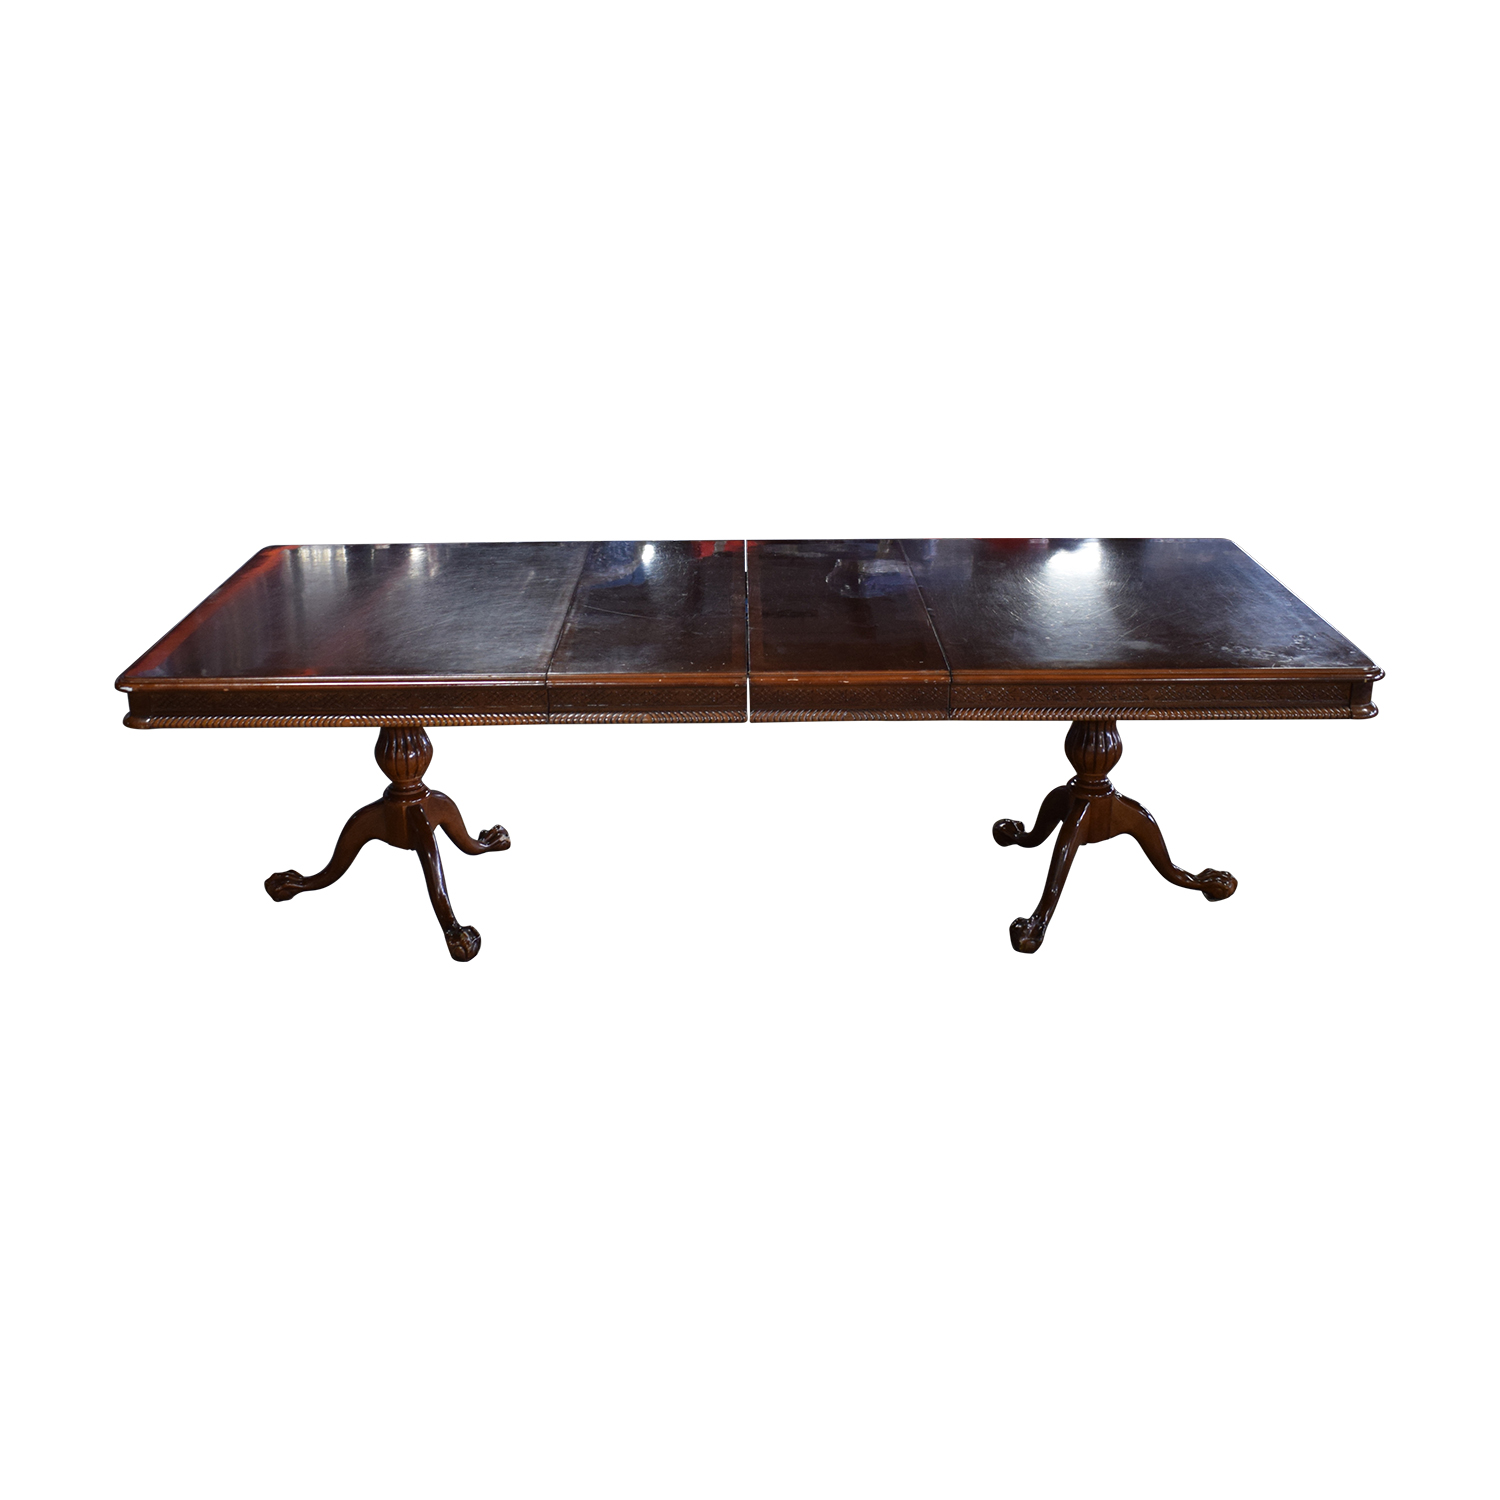 Carved Wood Dining Table with Two Extensions / Dinner Tables